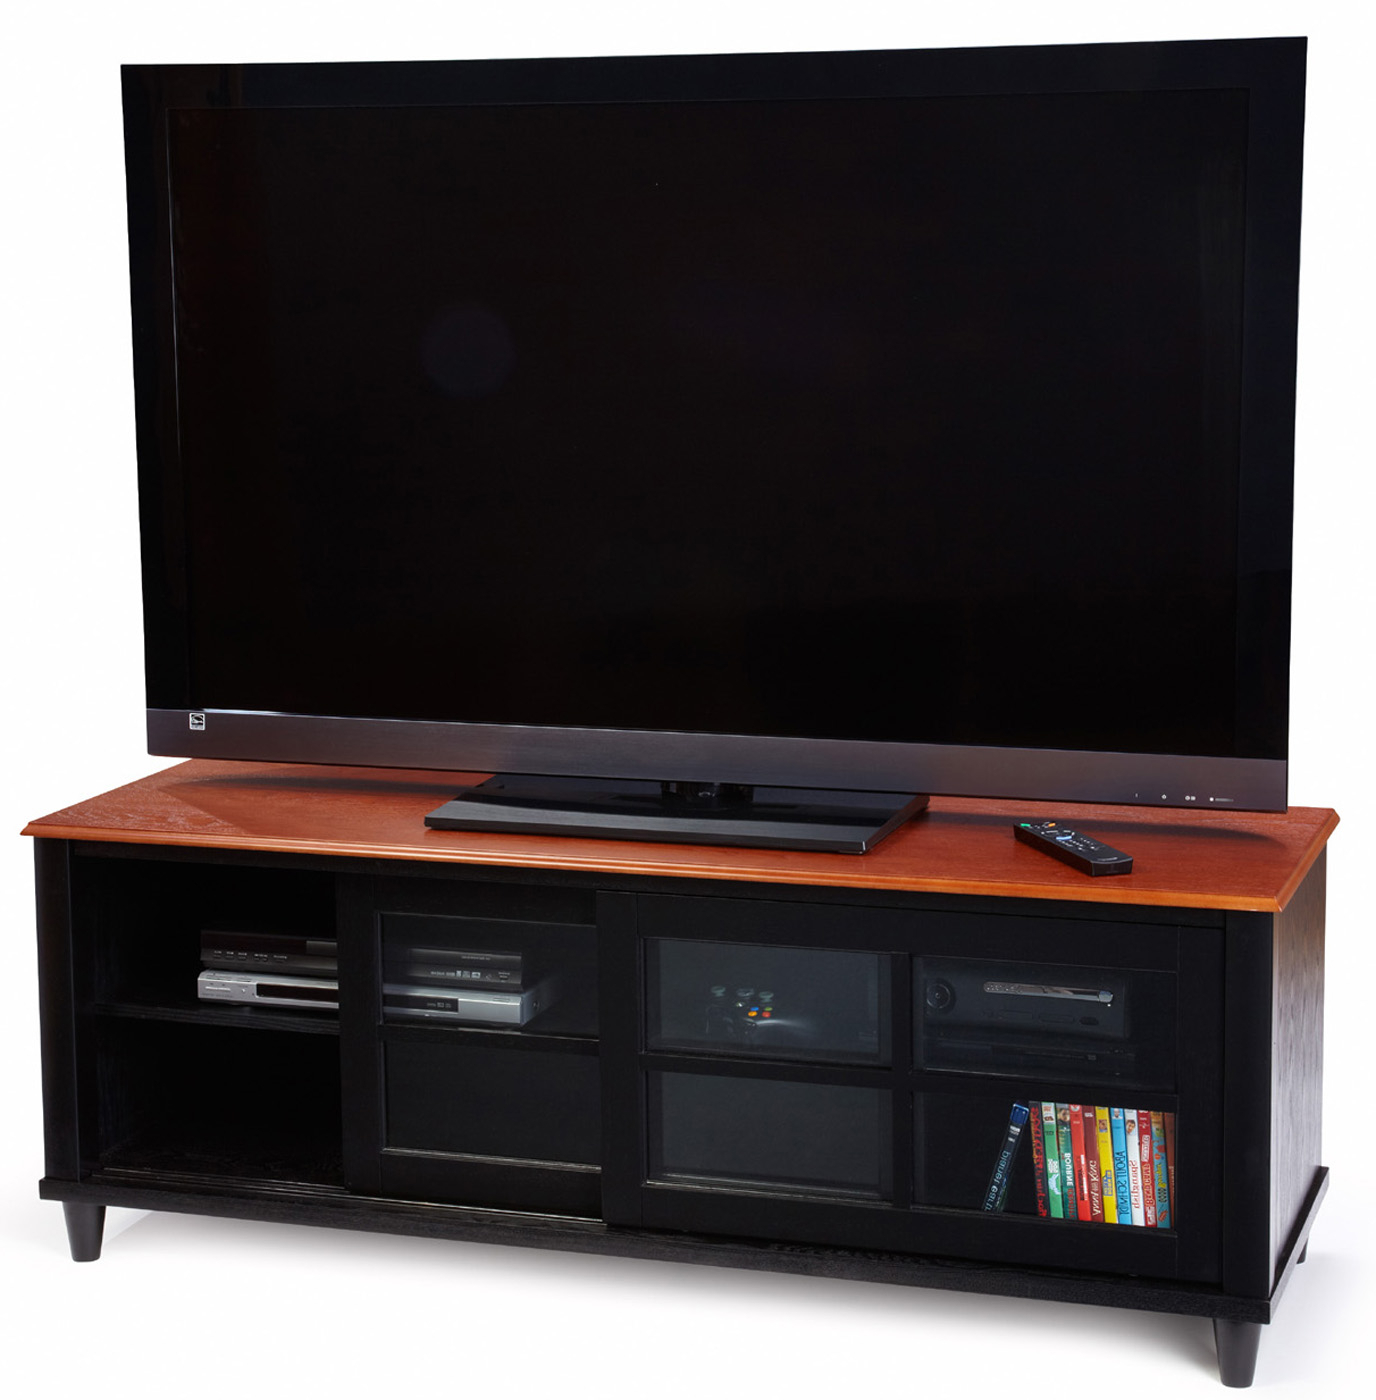 French Country Entertainment Centerconvenience Concepts In Tv Stands Within Most Up To Date French Country Tv Stands (View 3 of 20)